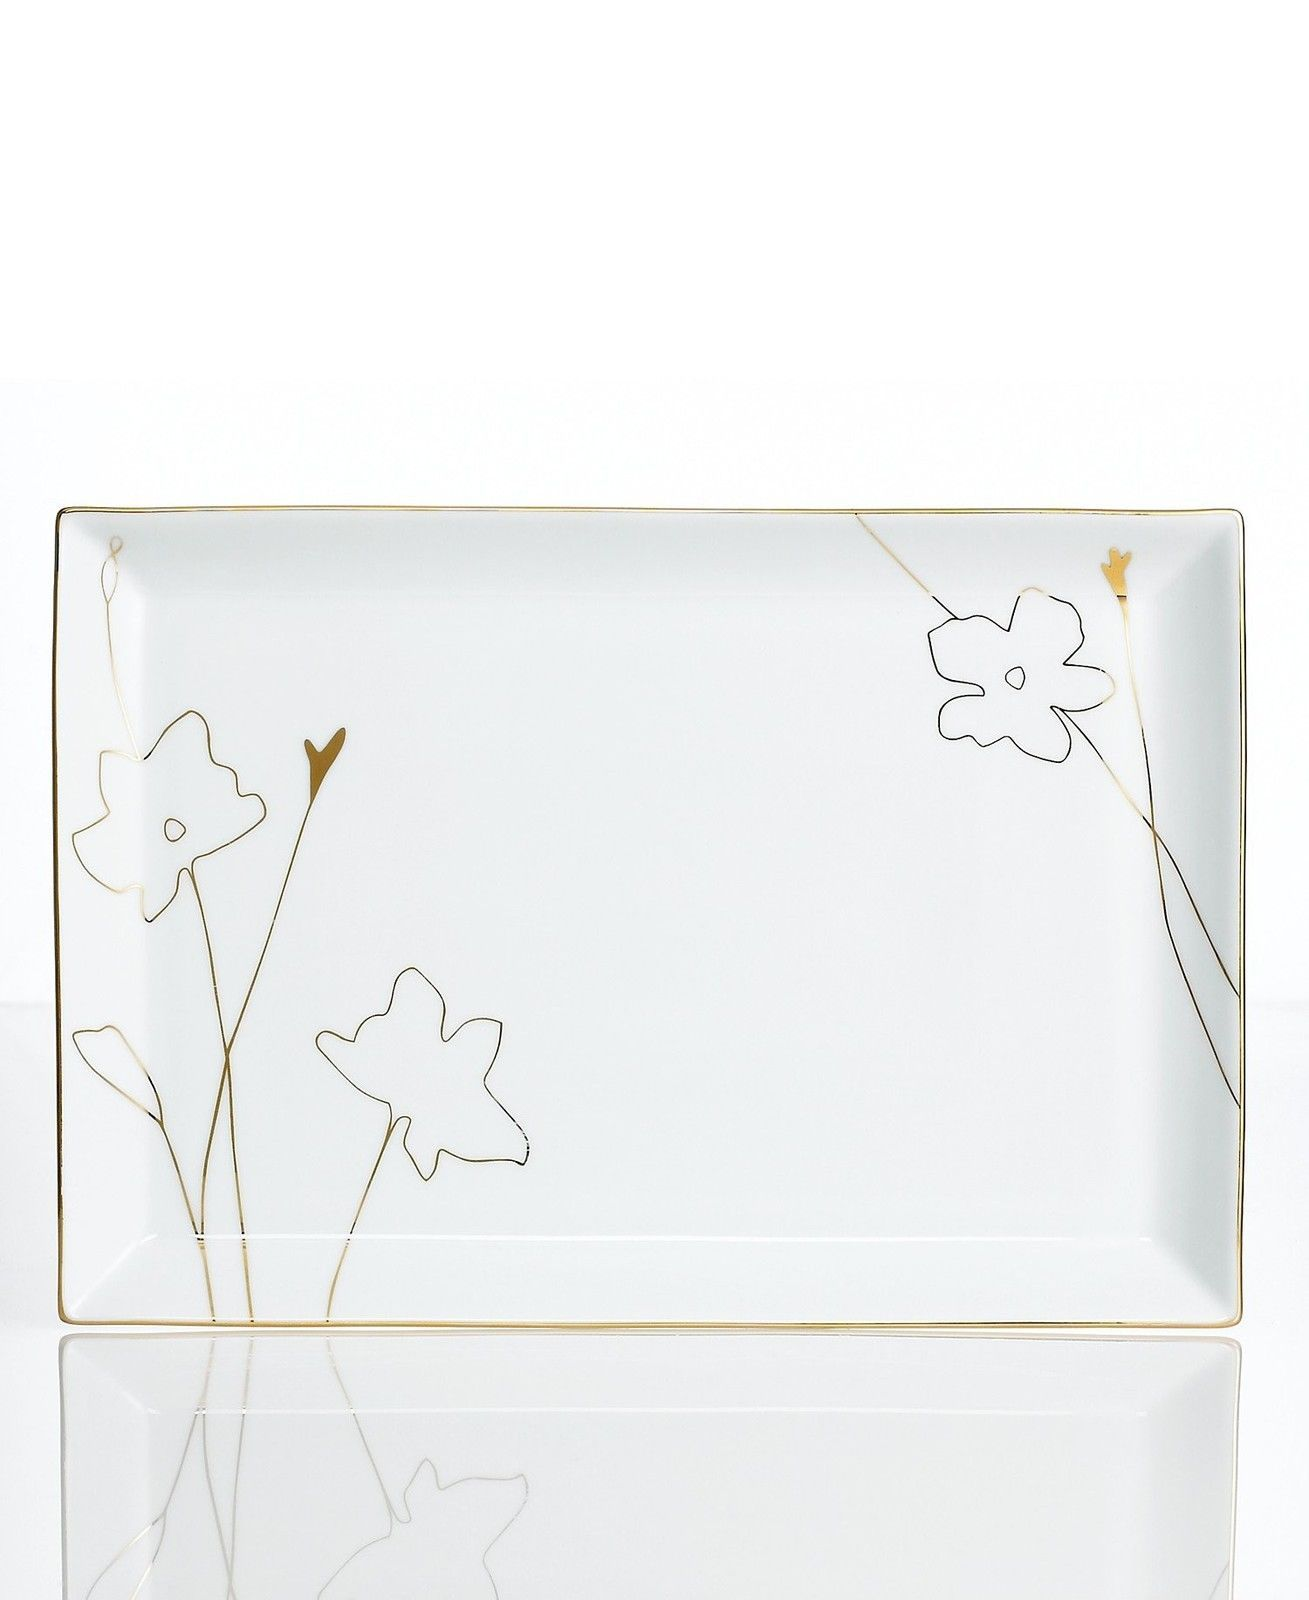 Charter Club Grand Buffet Gold Silhouette Large Platter